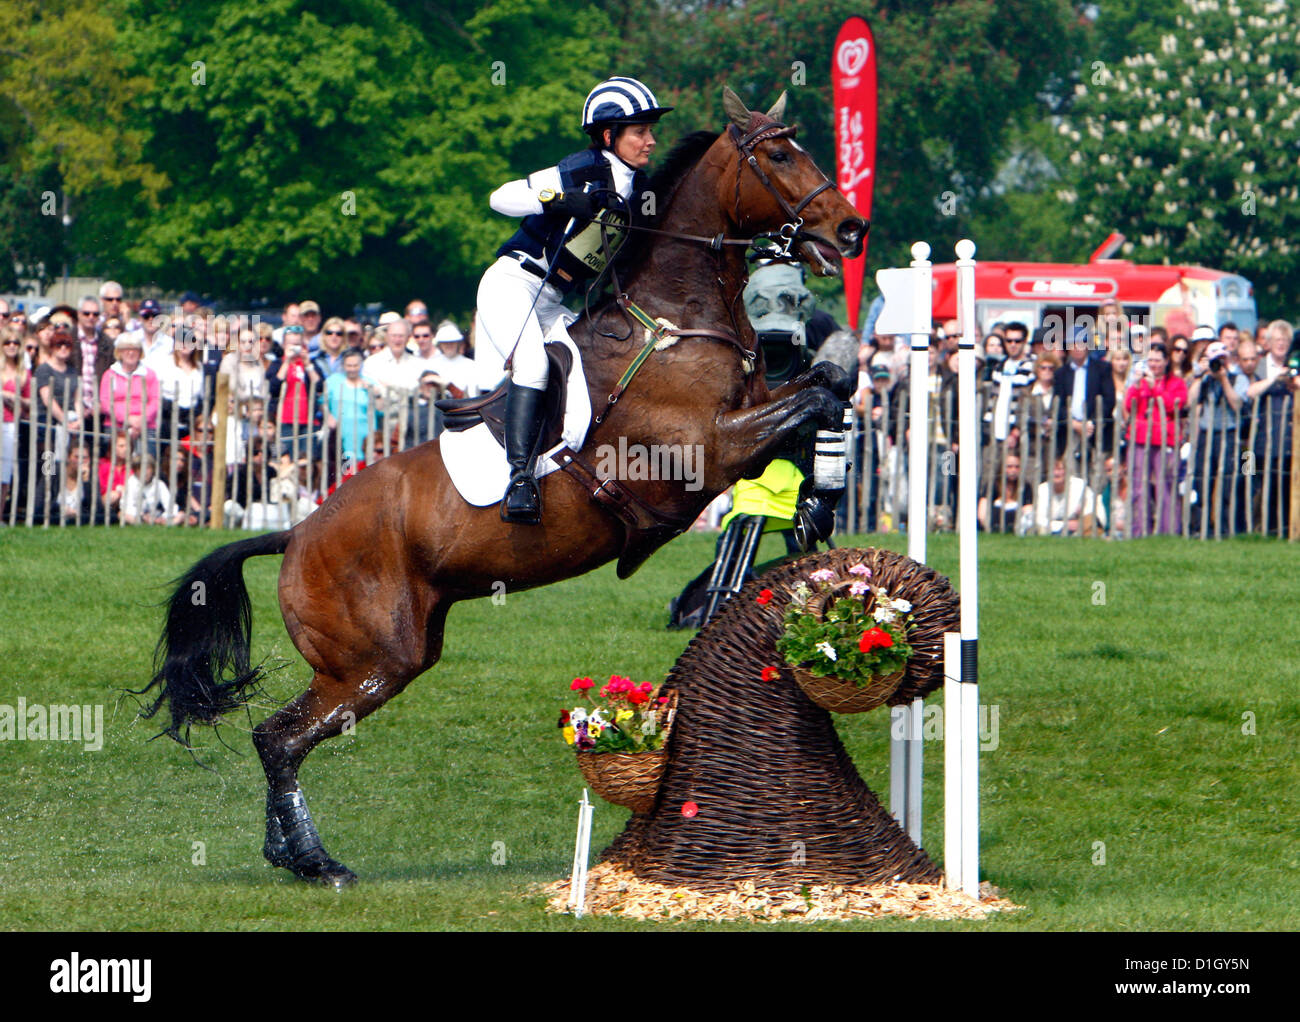 24.04.2011 Carroll Powell ( New Zealand ) on Boston Two at Badminton Horse Trials Credit James Galvin - Stock Image